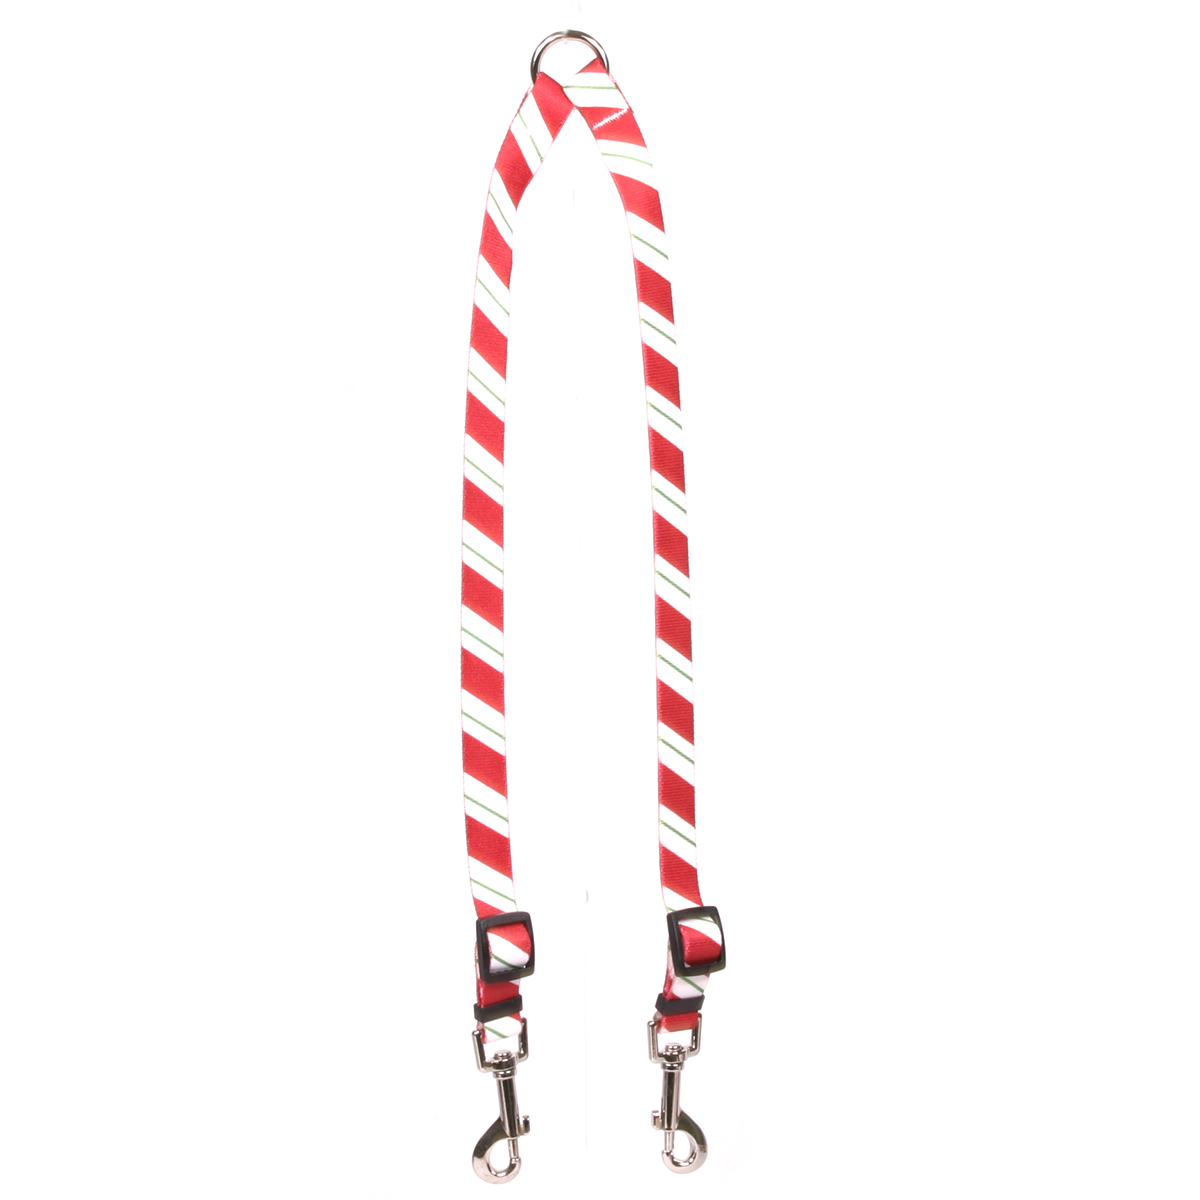 Peppermint Stick Coupler Lead